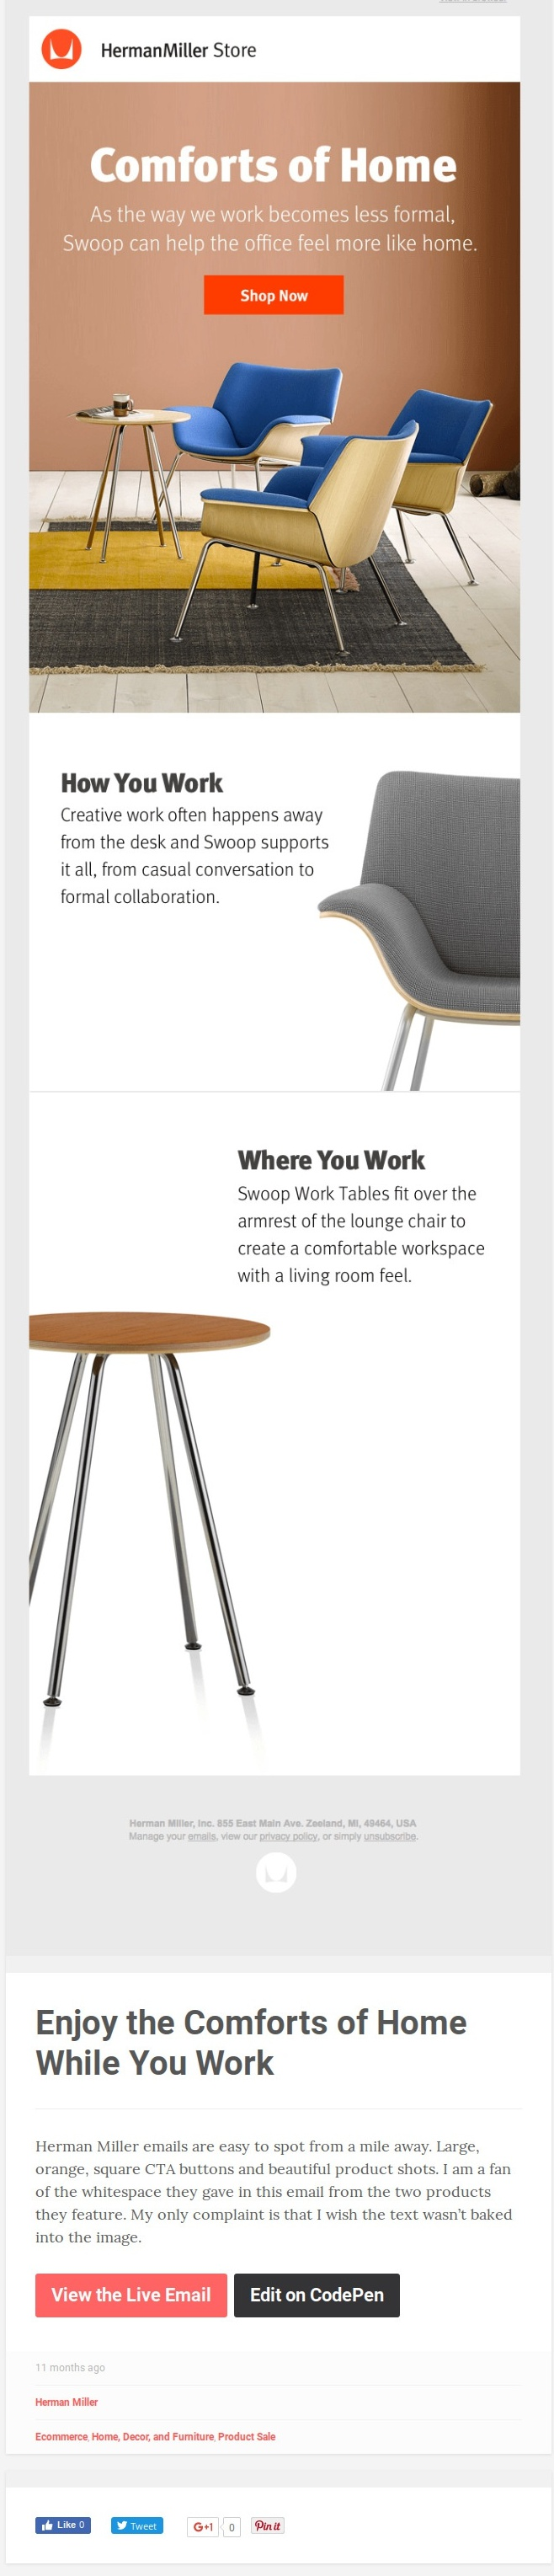 Less Is More Emails - Herman Miller